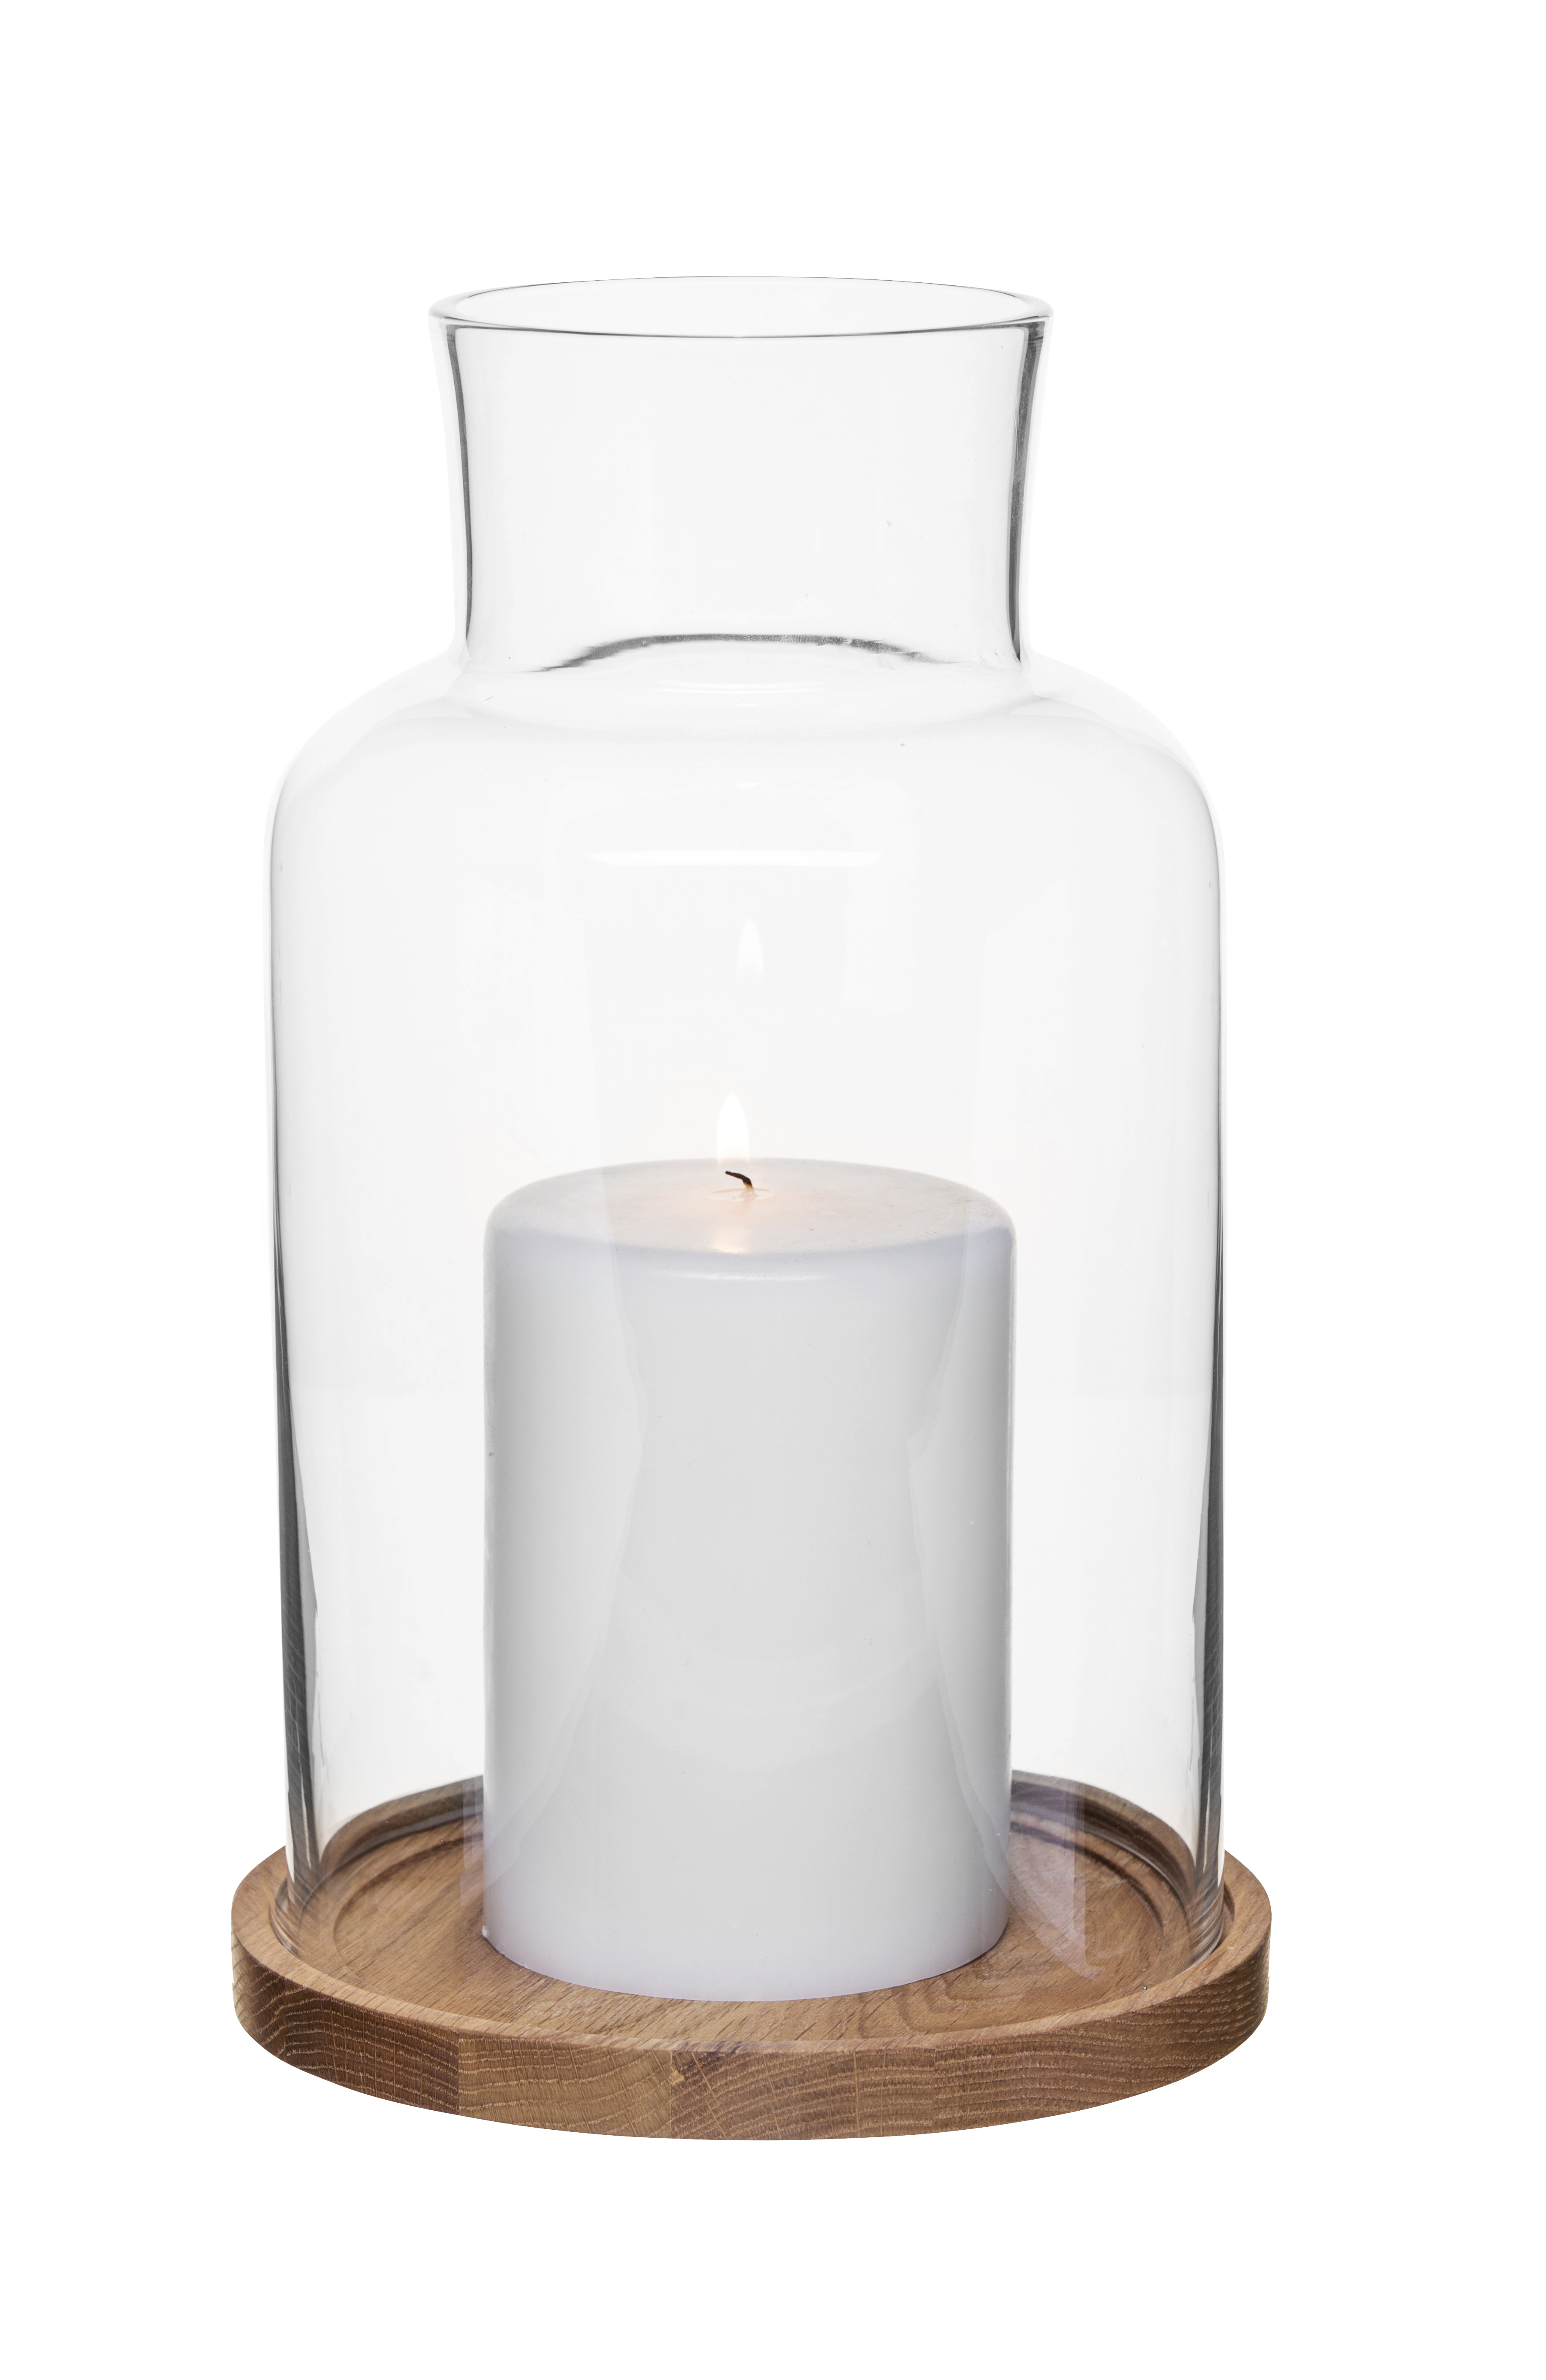 Oak candleholder, medium